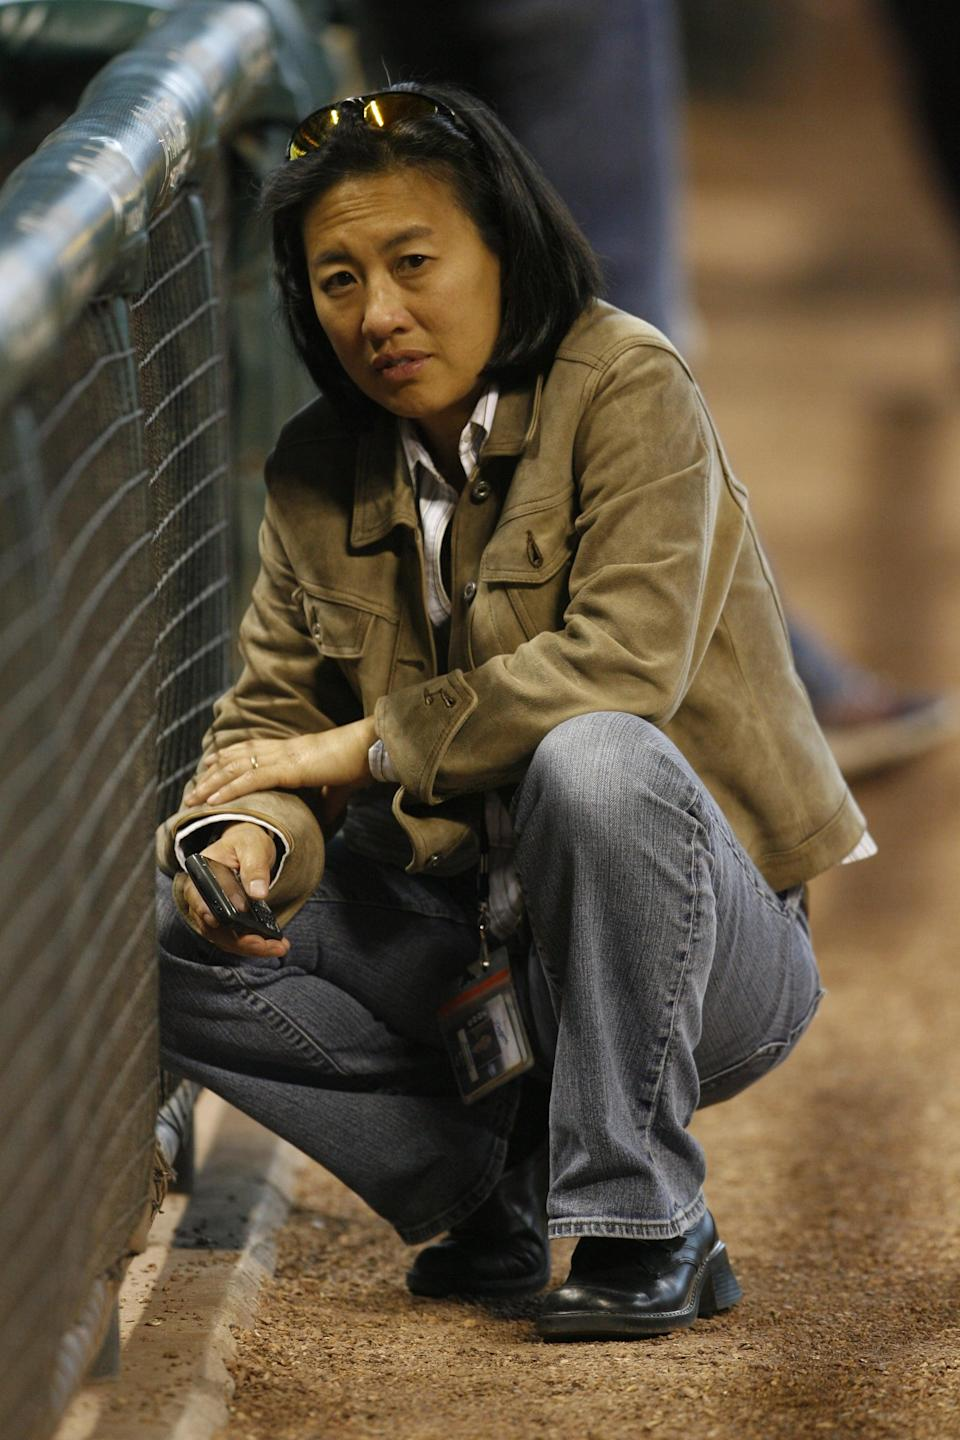 23 April 2009: Los Angeles Dodgers vice president and assistant general manager Kim Ng looks on prior to the Los Angeles Dodgers vs. Houston Astros baseball game at Minute Maid Park on Thursday April 23, 2009 in Houston, Texas. Los Angeles won 2-0. (Photo by Aaron M. Sprecher/Icon SMI/Corbis/Icon Sportswire via Getty Images)